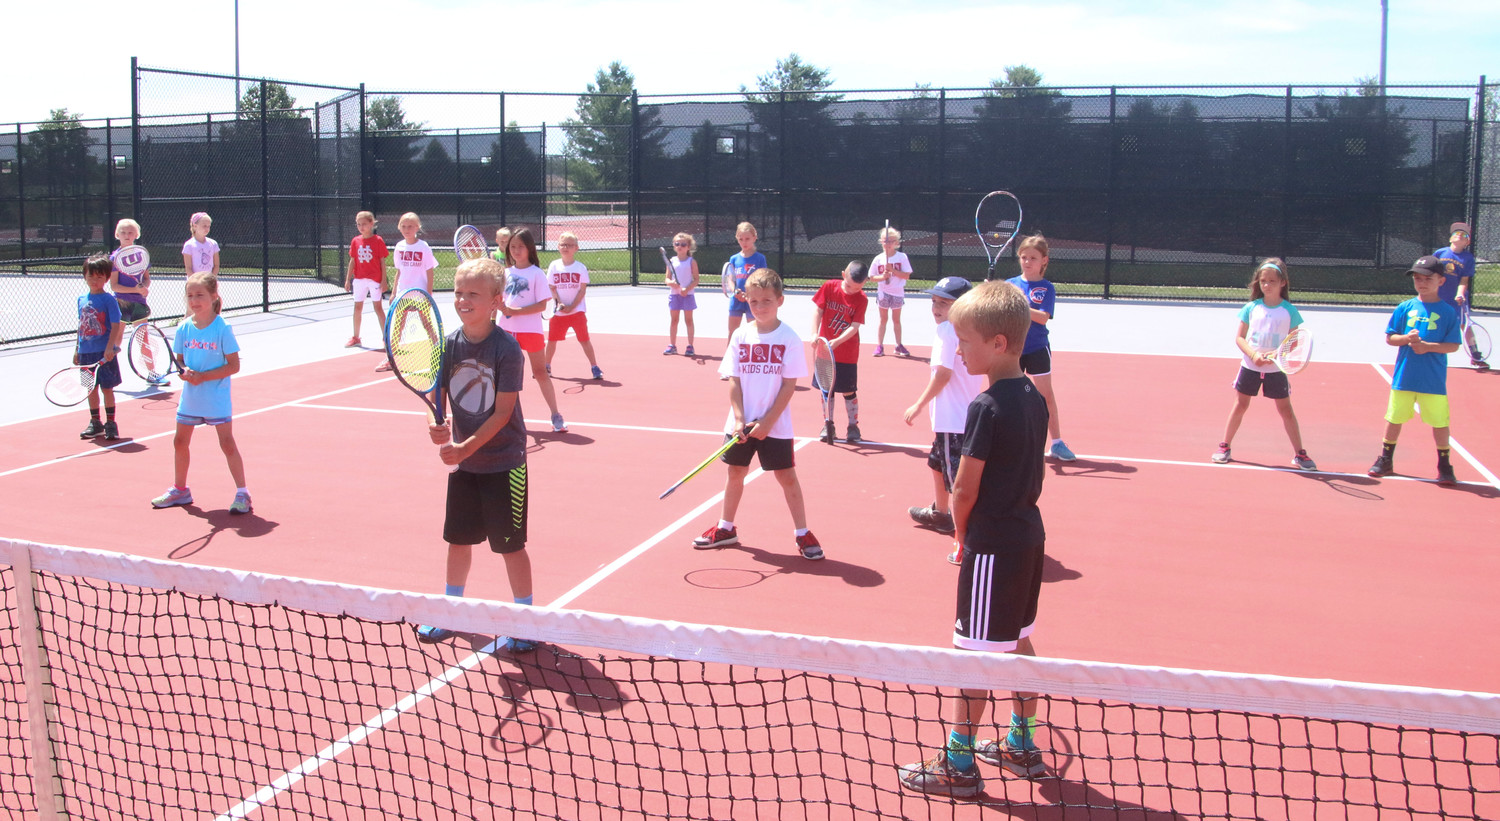 Students entering first thru fifth grade learned the basic fundamentals of track, soccer and tennis under the guidance of Lancer coaches and varsity athletes.